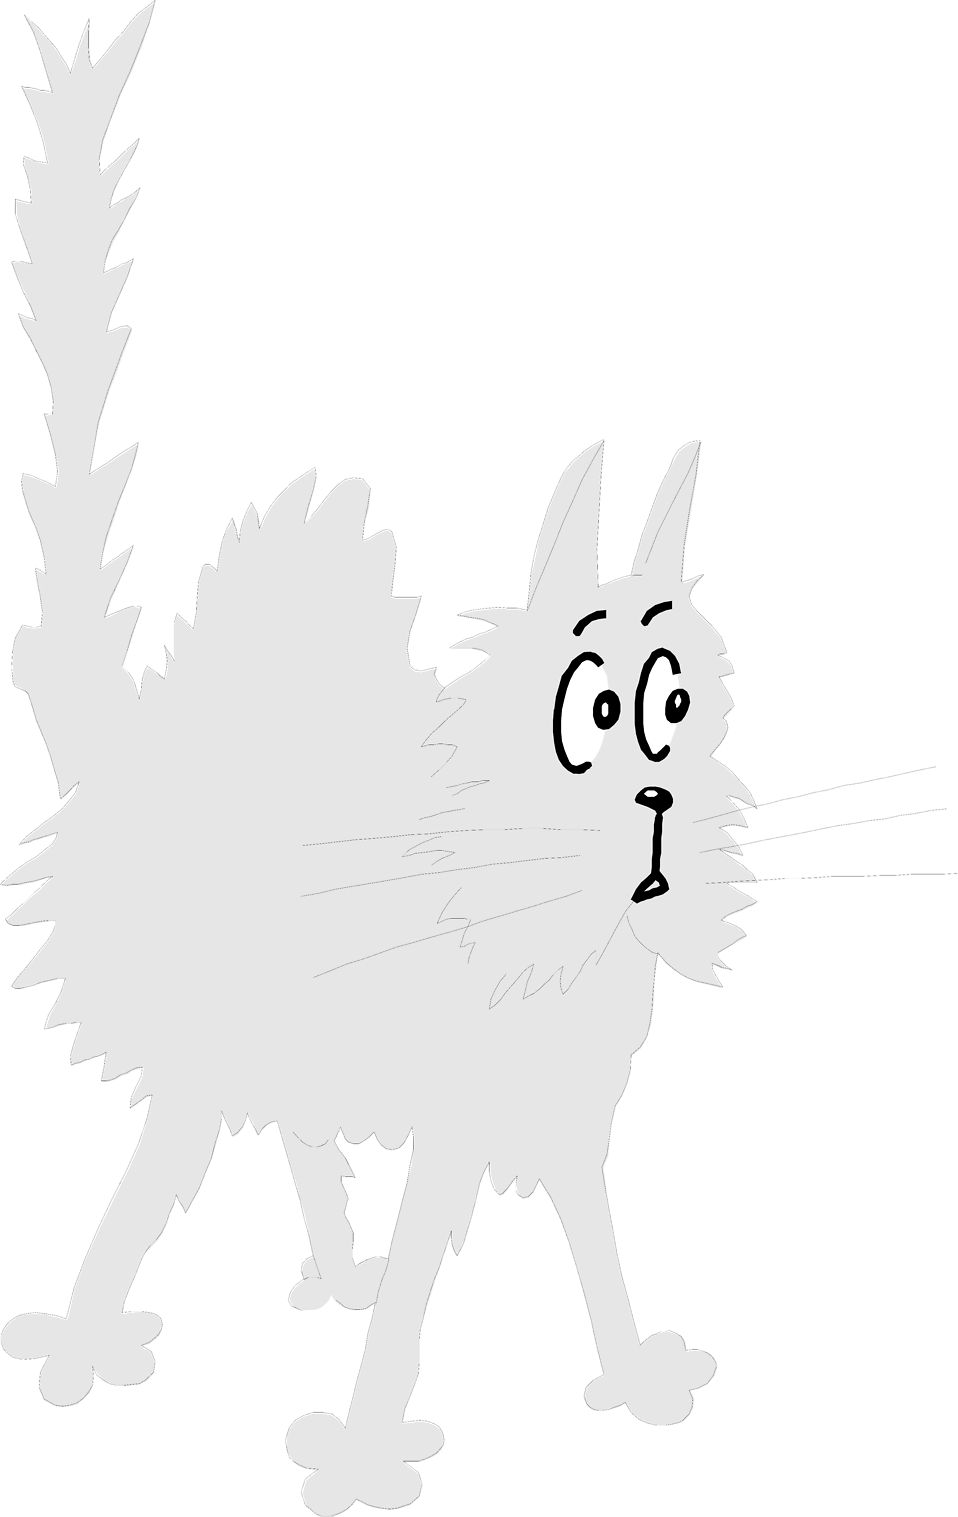 Scared cat clipart clipart free download Cat | Free Stock Photo | Illustration of a cartoon scared cat | # 7143 clipart free download